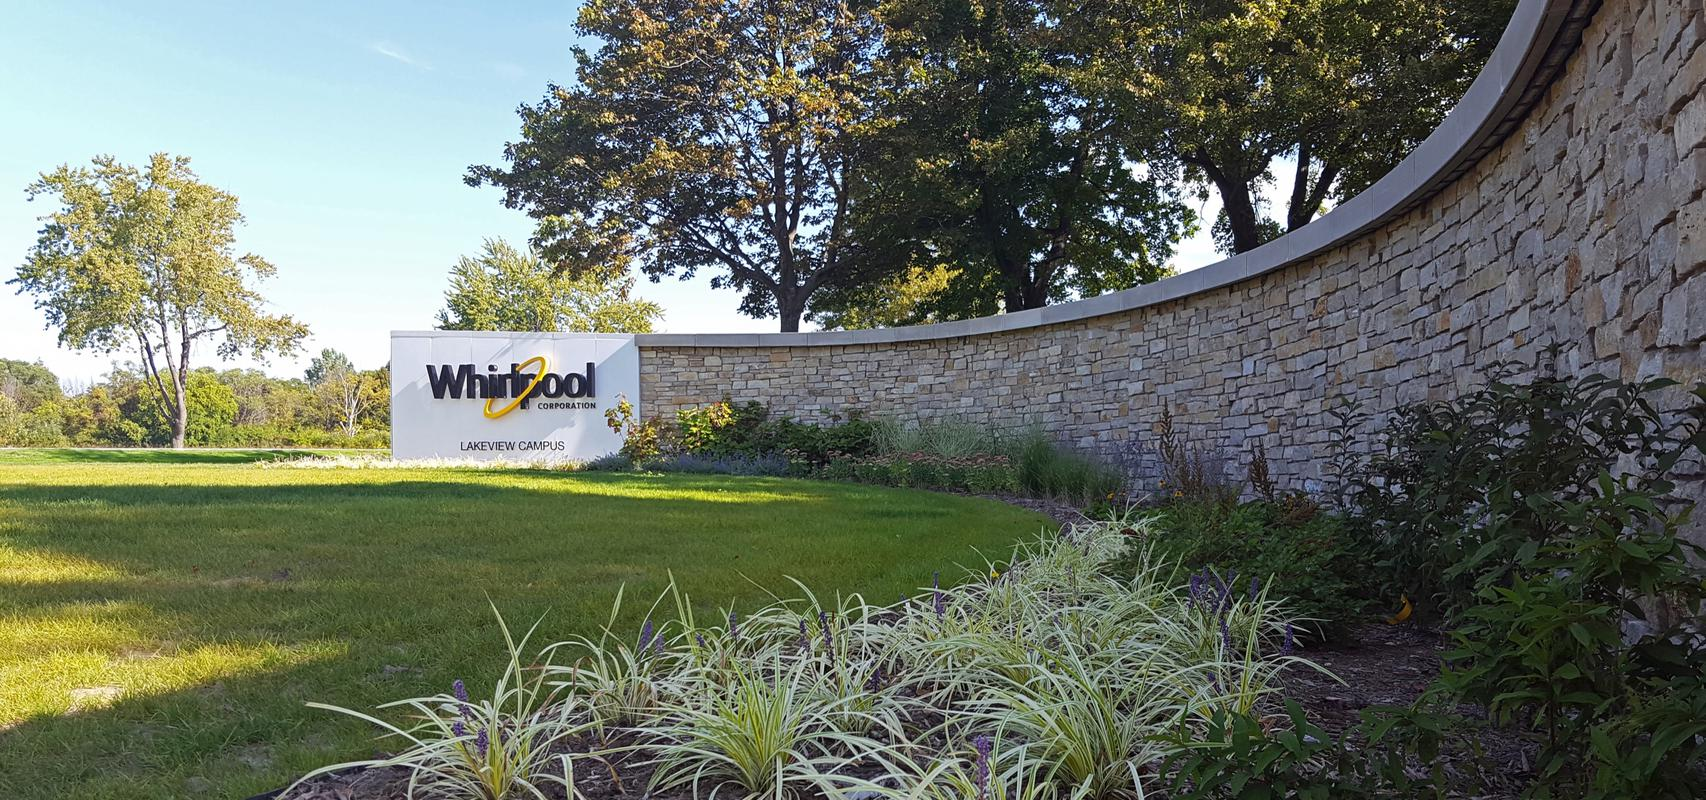 whirlpool welcoming signage and landscape architecture